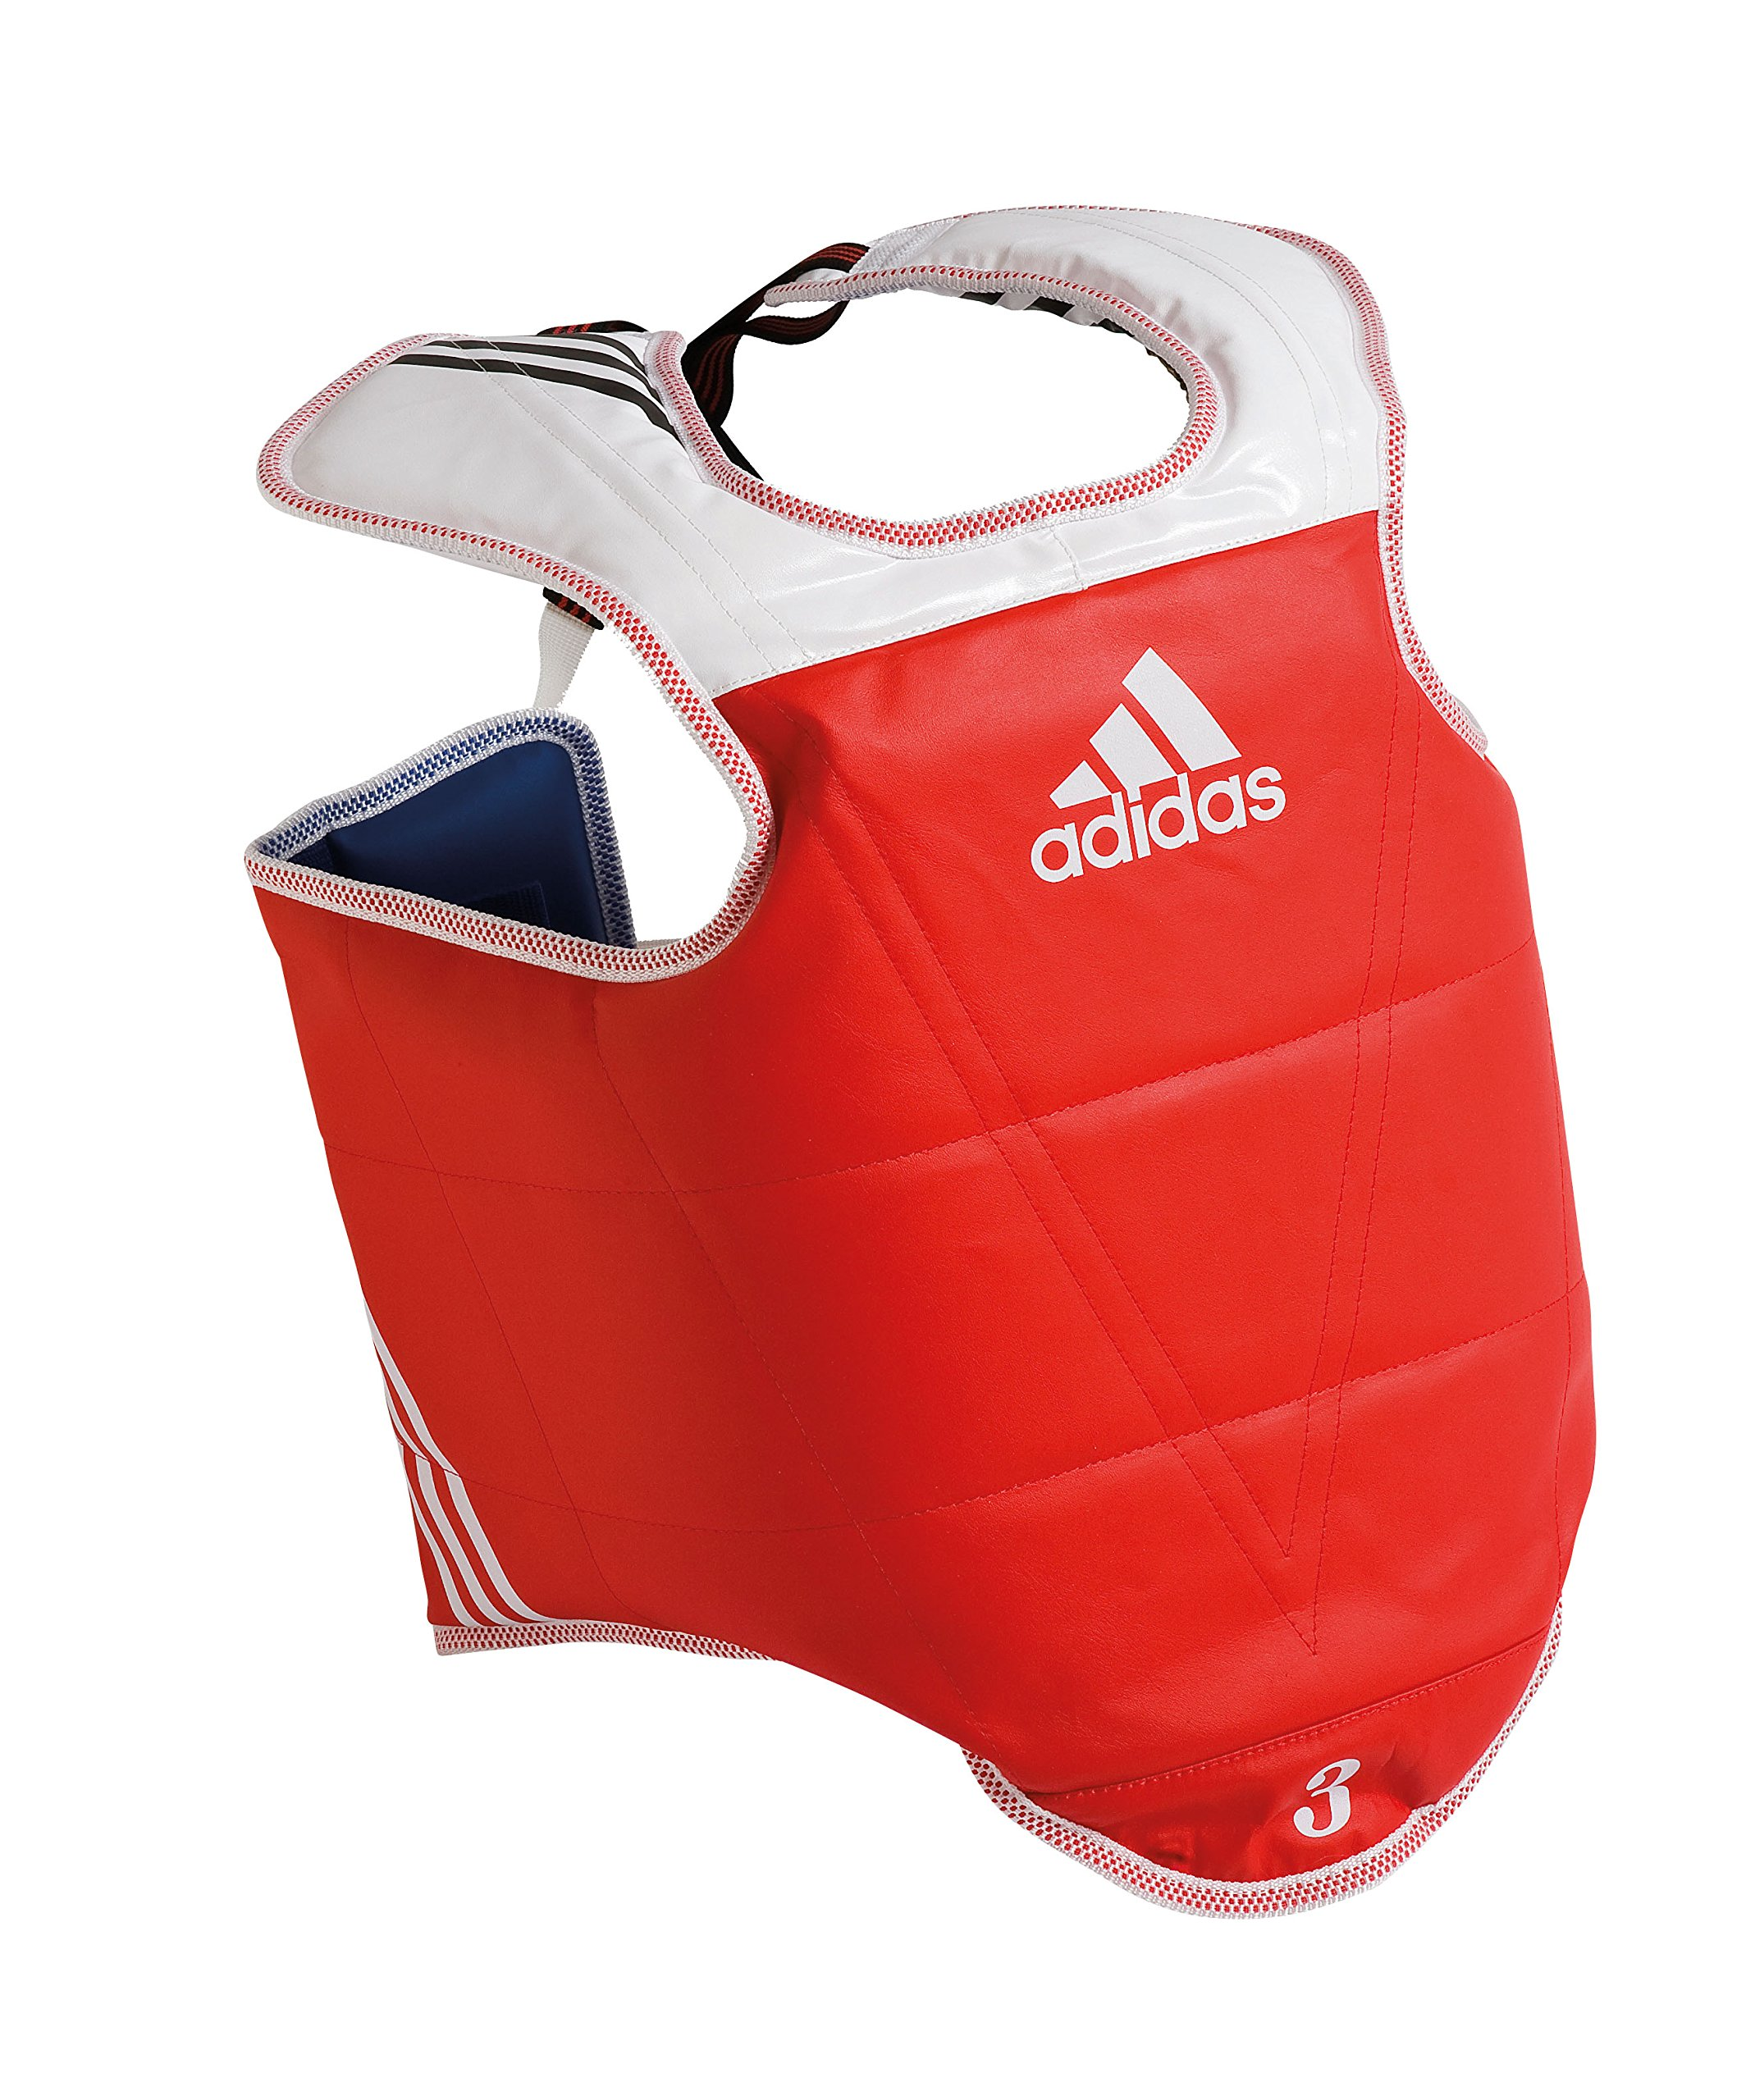 Practical Wushu Sanda Chest Guard Taekwondo Chest Protector Breast Pad Armor Waist Guard Other Fitness & Bodybuilding Products